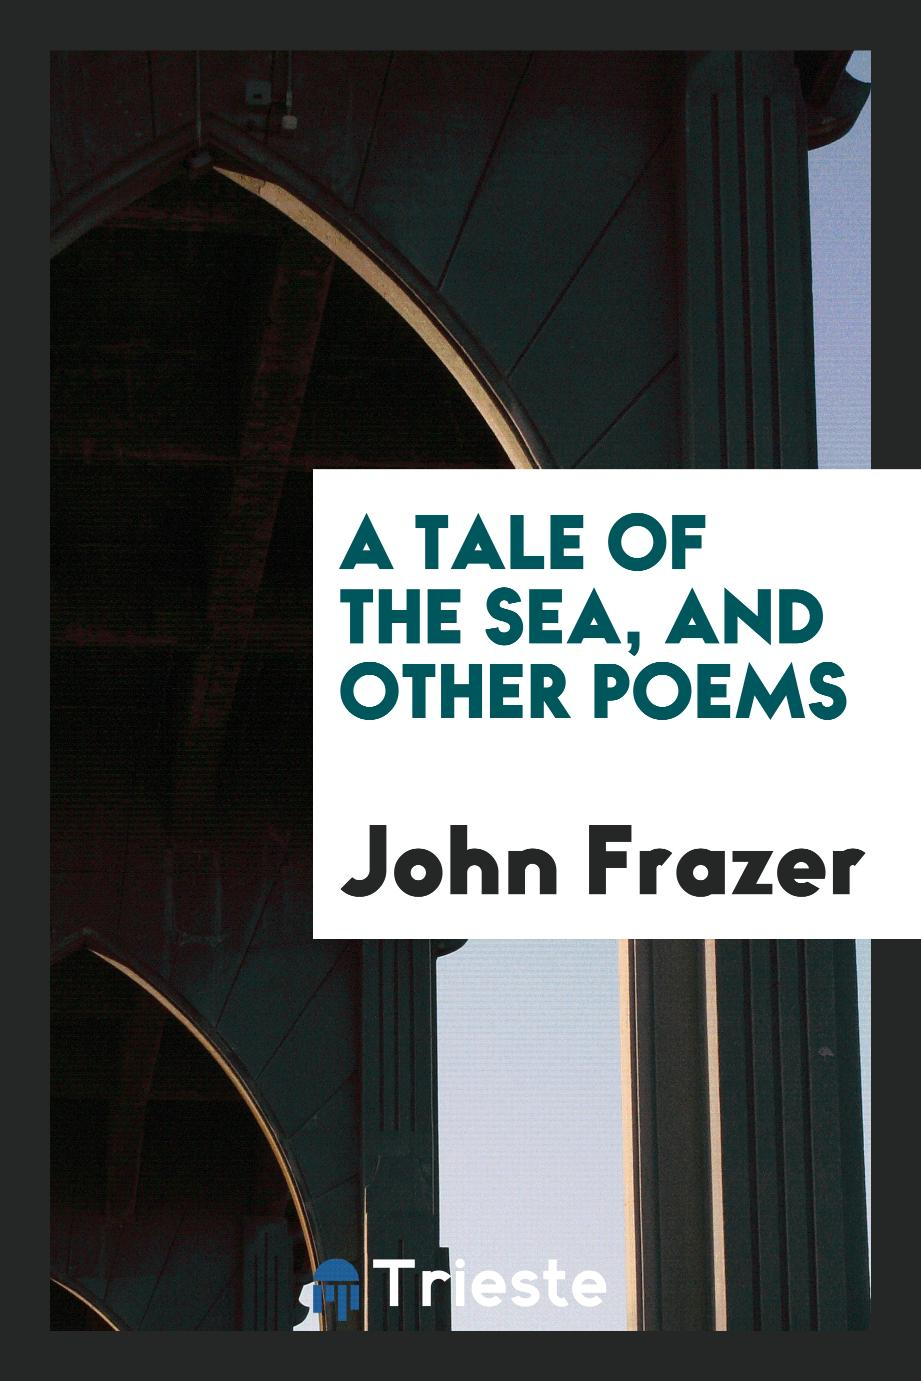 A Tale of the Sea, and Other Poems